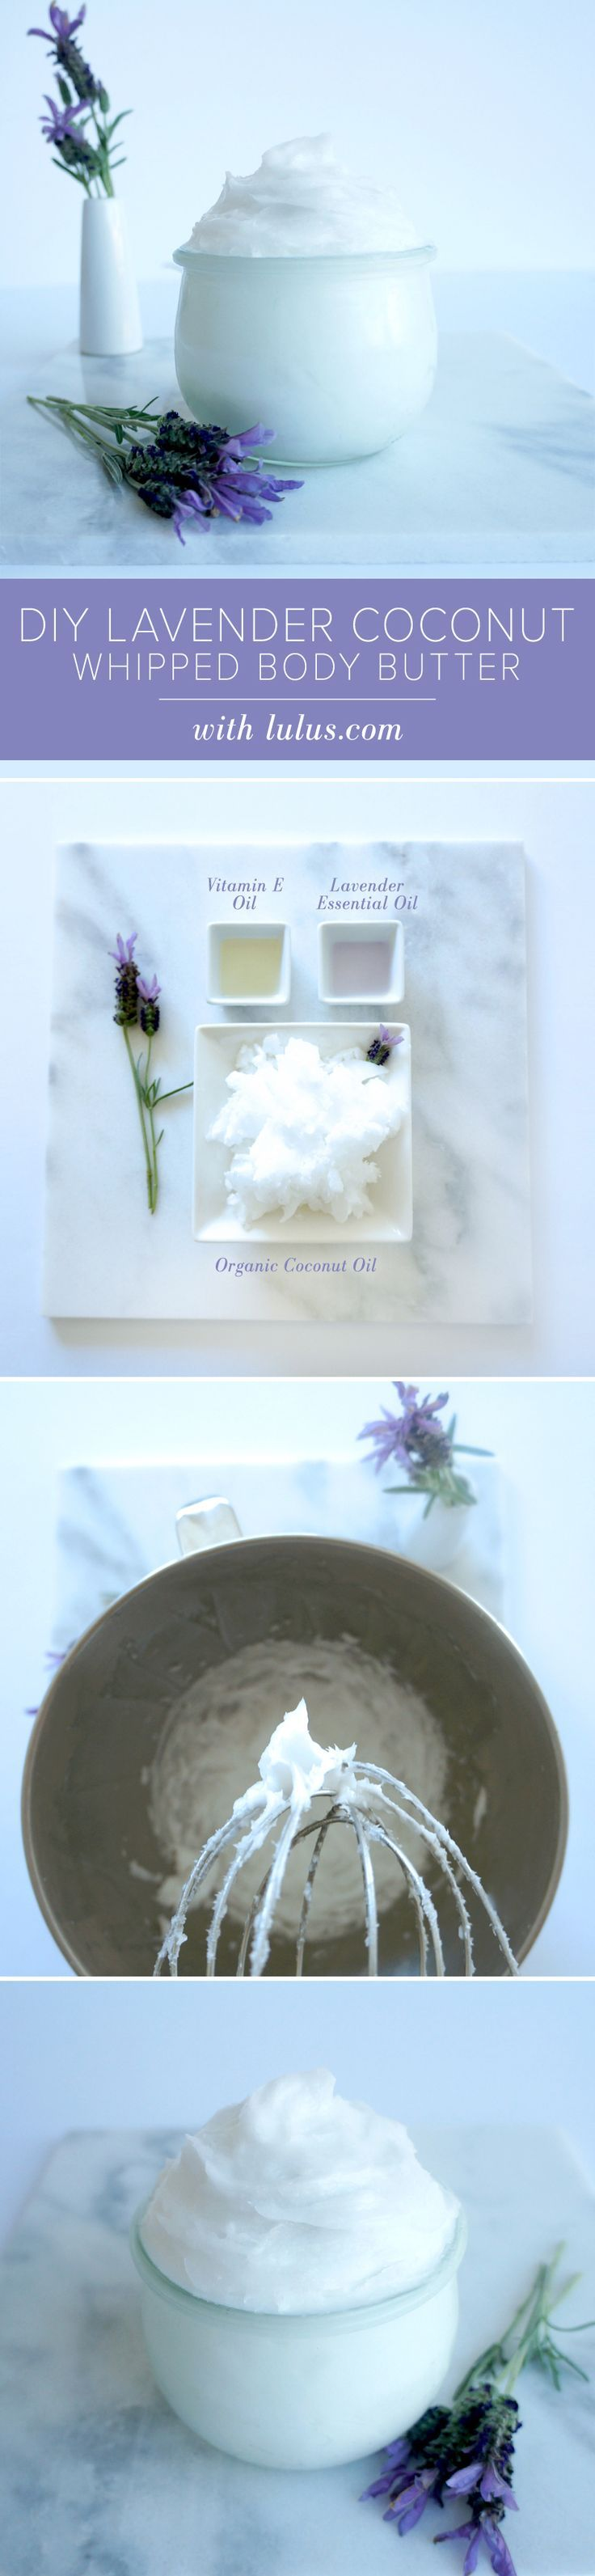 Lavender Coconut Whipped Body Butter